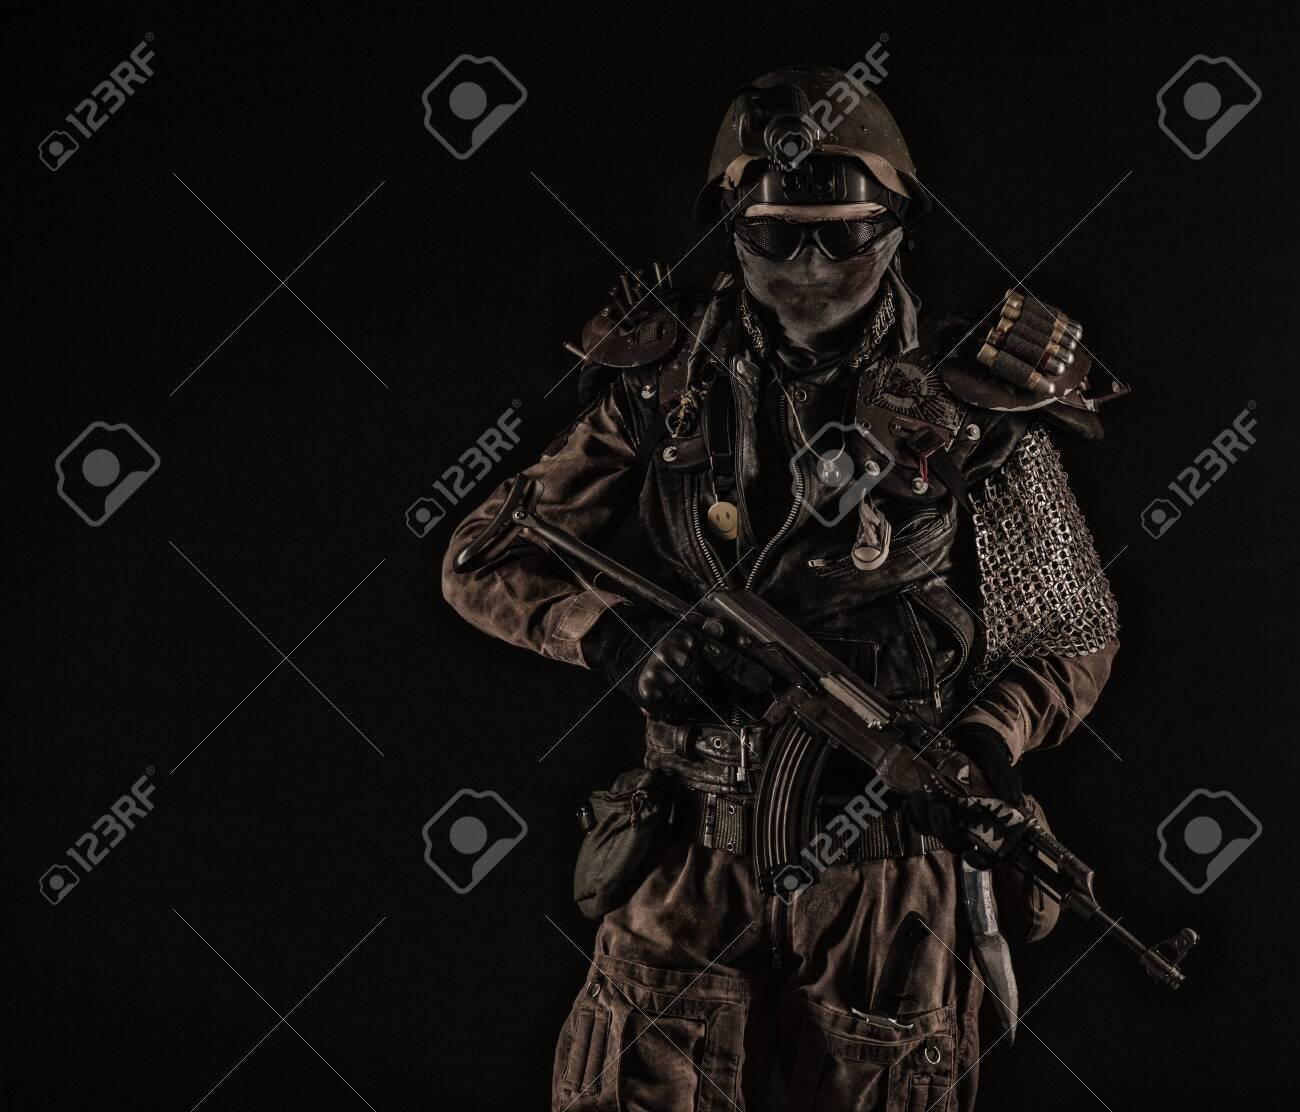 Nuclear post apocalypse life after doomsday concept. Grimy survivor with homemade weapons. Studio portrait - 147184127